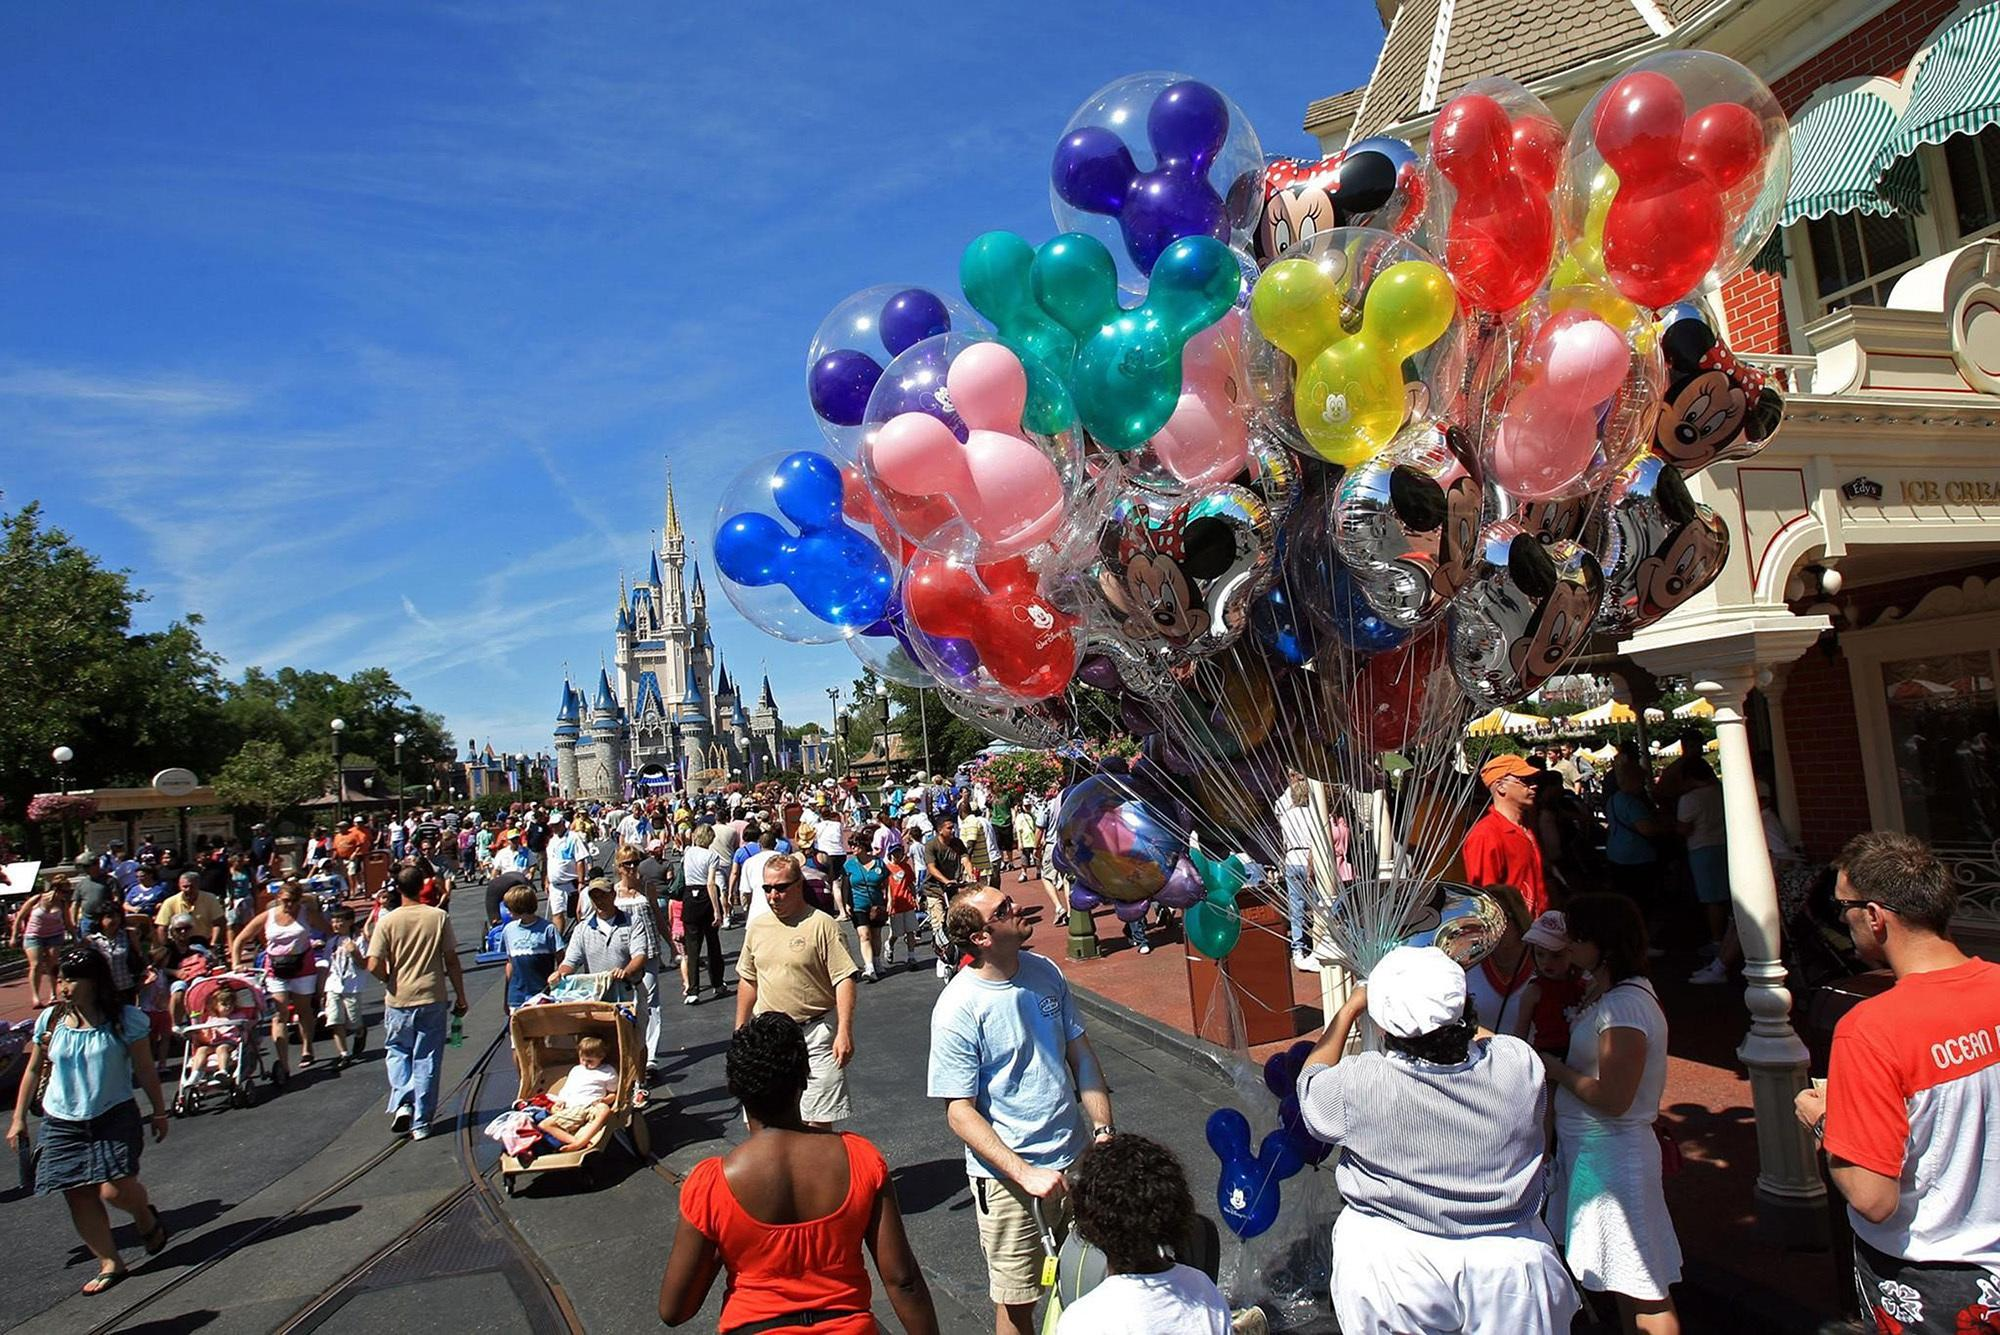 Florida regulators to seek more details about injuries suffered on theme park rides